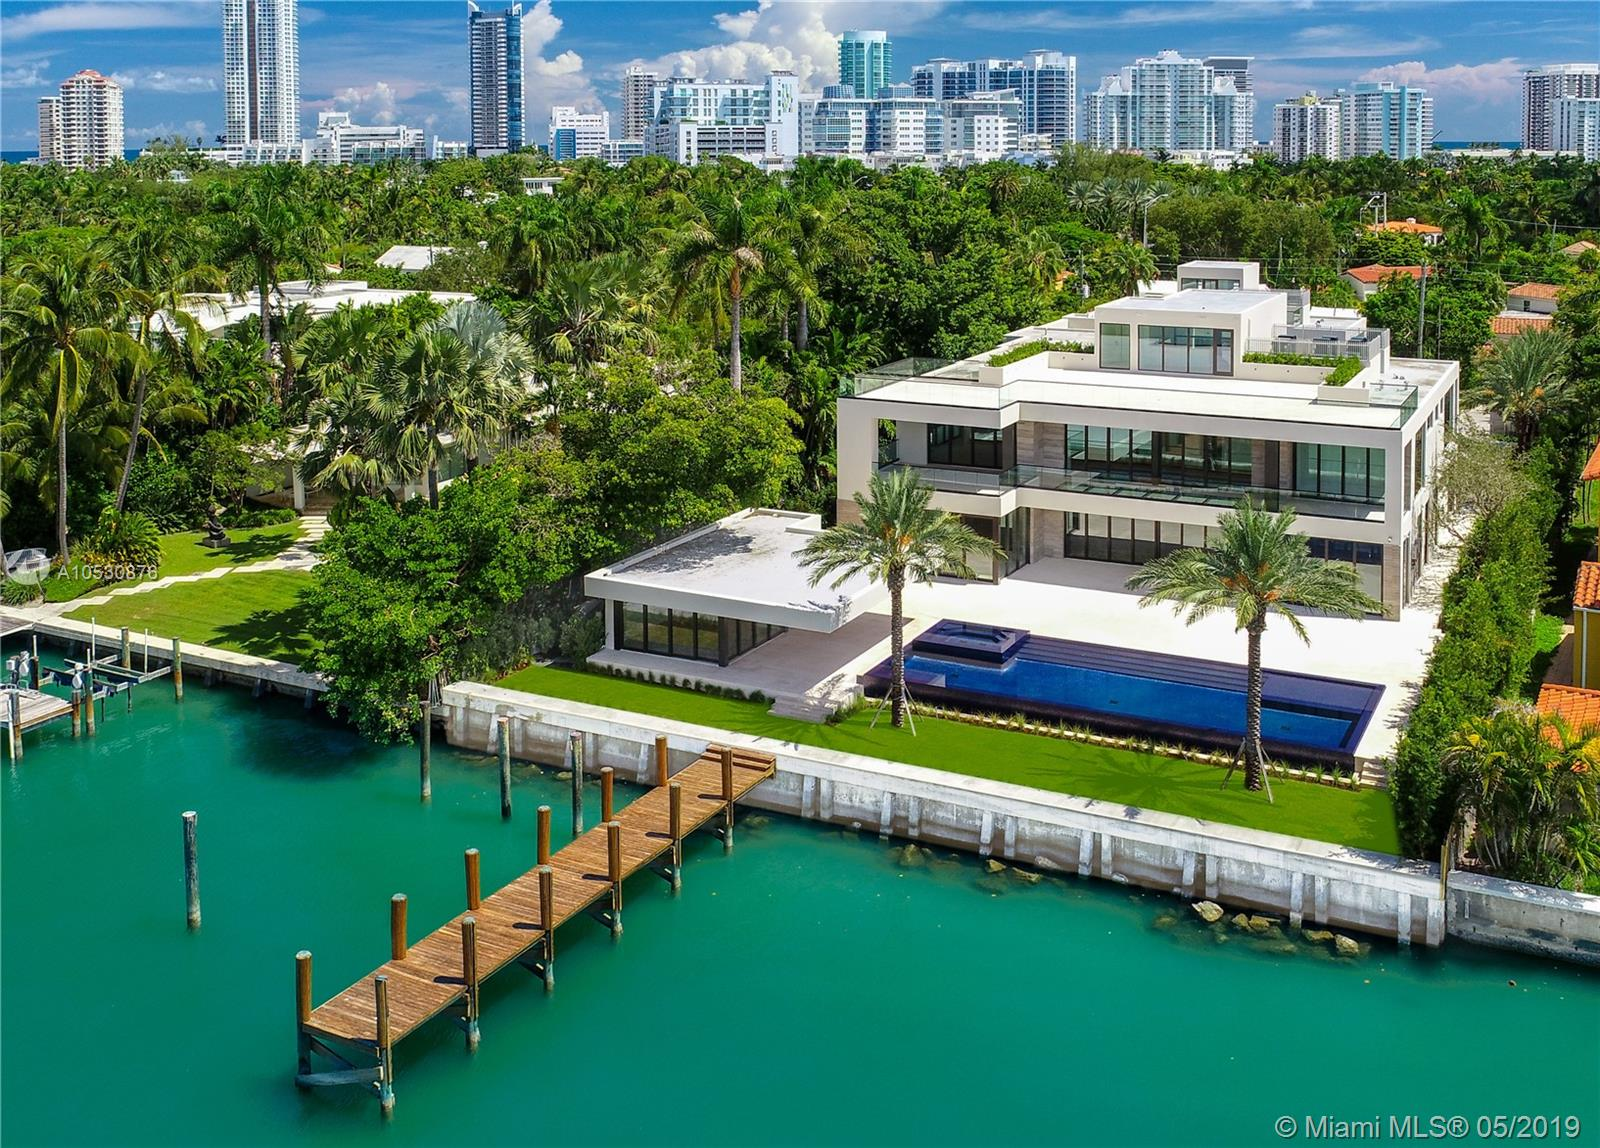 6360 N Bay Rd, Miami Beach, FL 33141